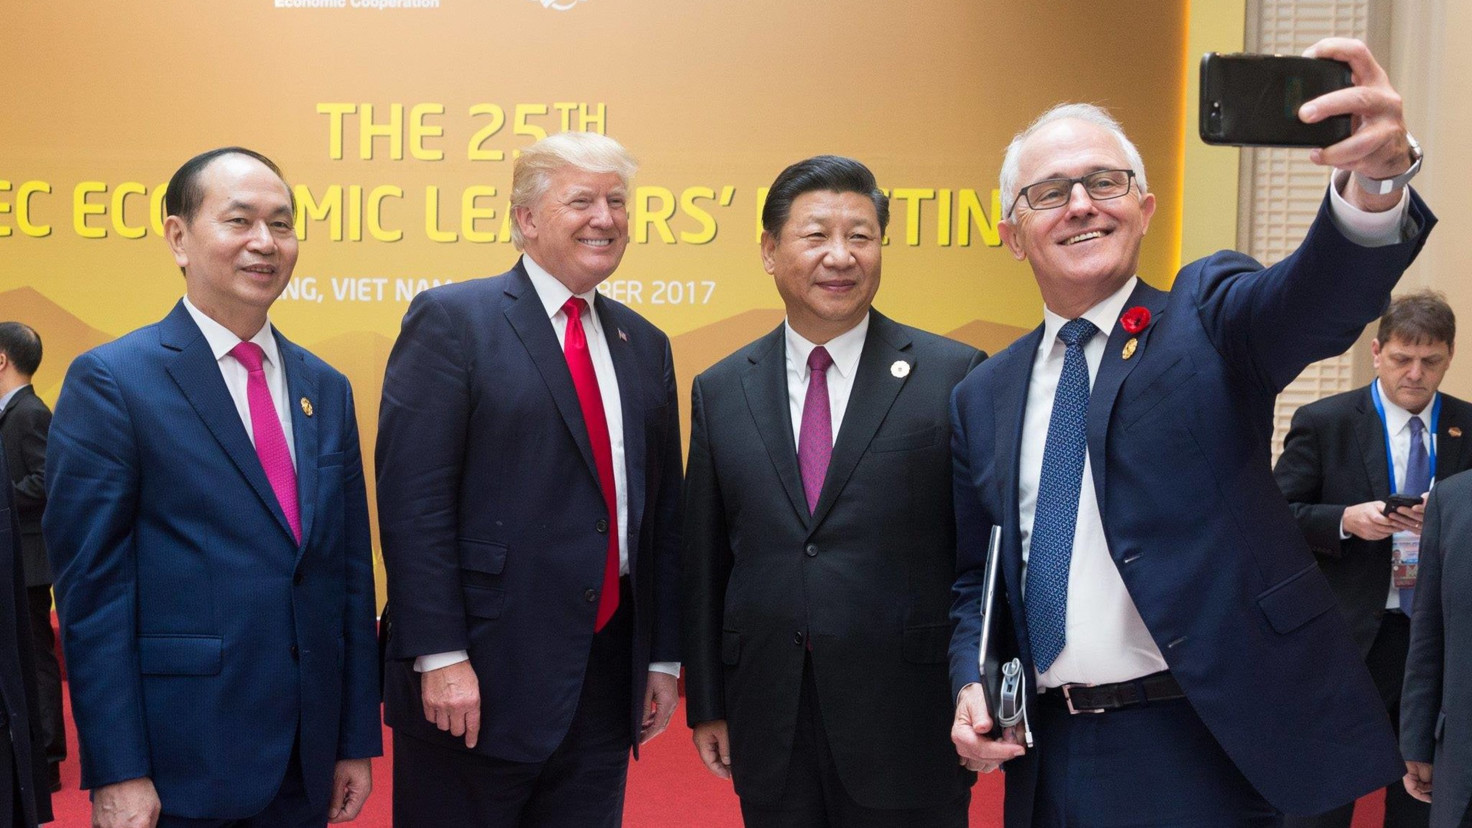 Chinese Stocks Rise as Donald Trump and Xi Jinping Agree on Ceasefire in Trade War